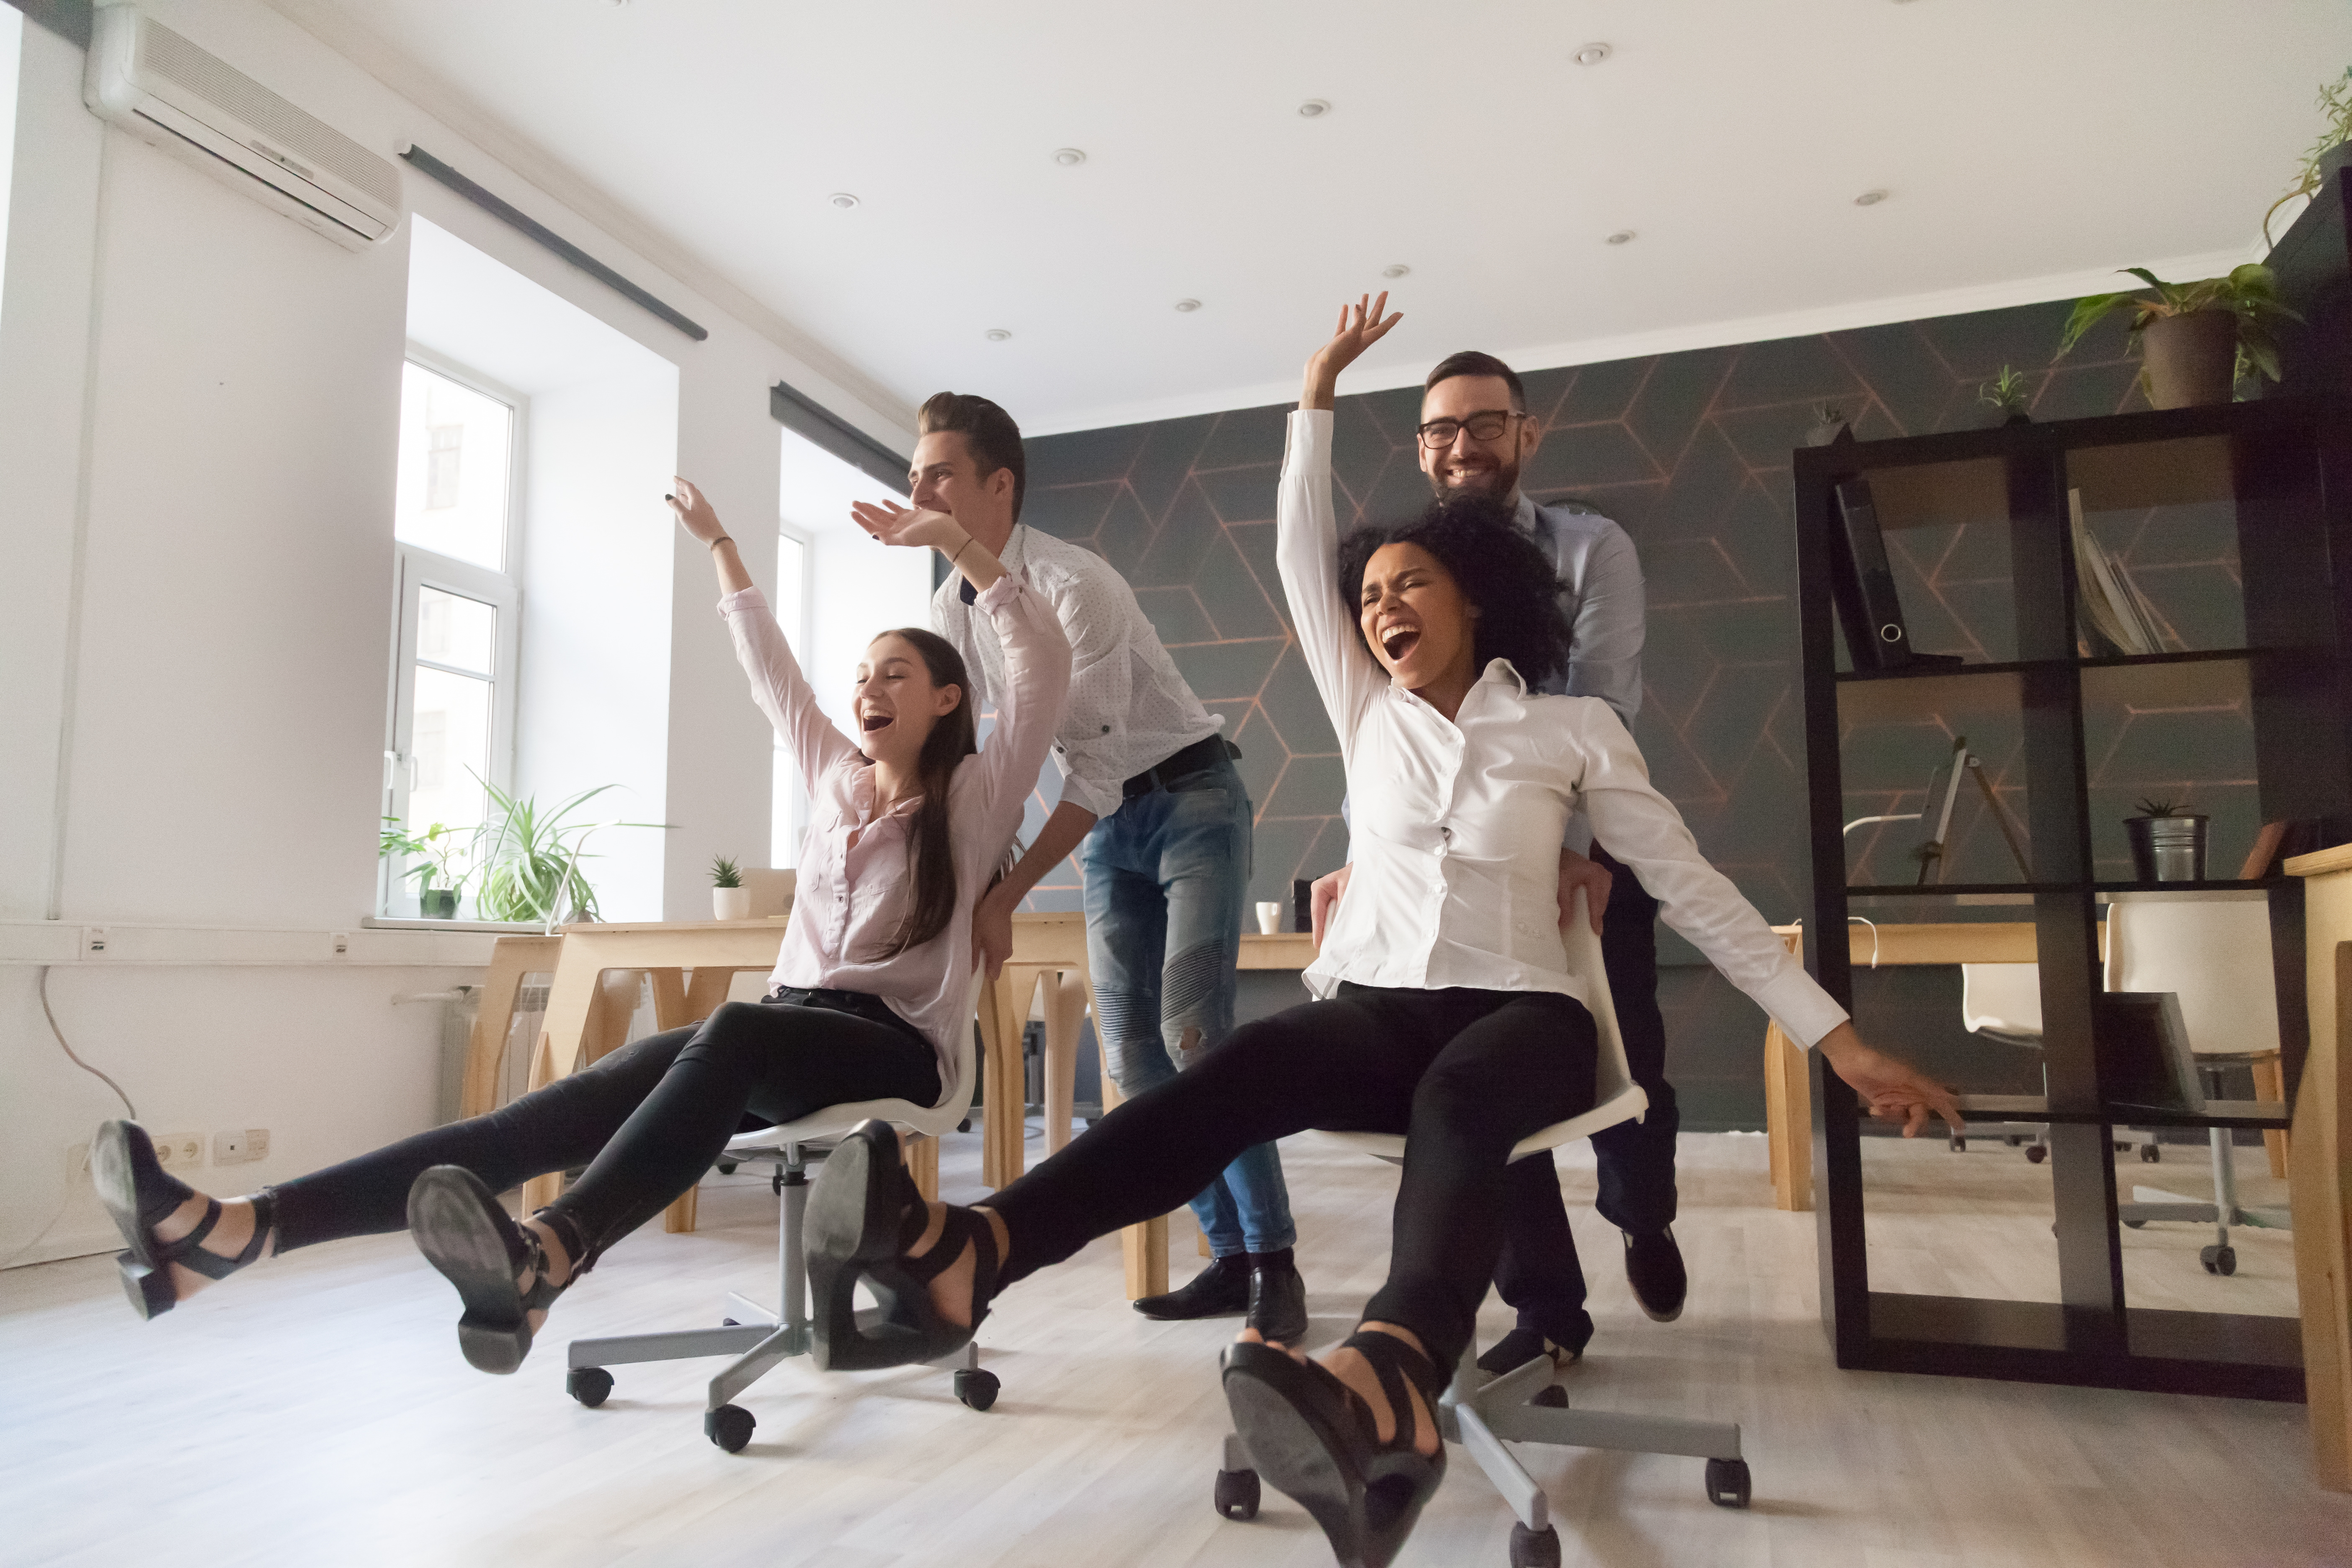 8 Funny Workplace Quotes to Lighten Up Your Office | FrankSMS